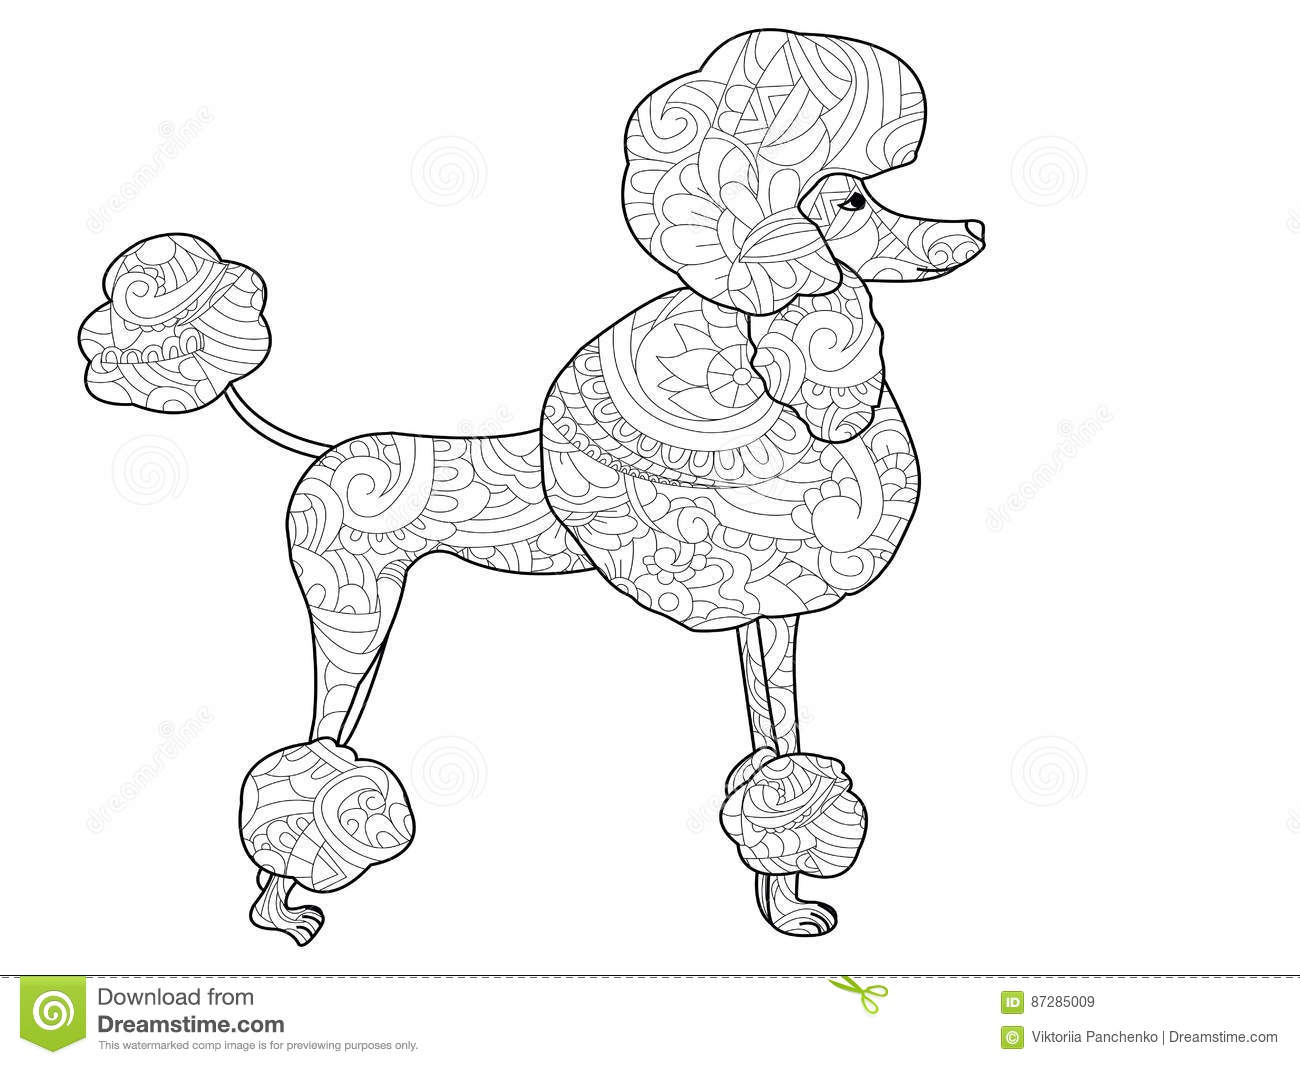 poodle dog coloring vector for adults stock vector image 87285009